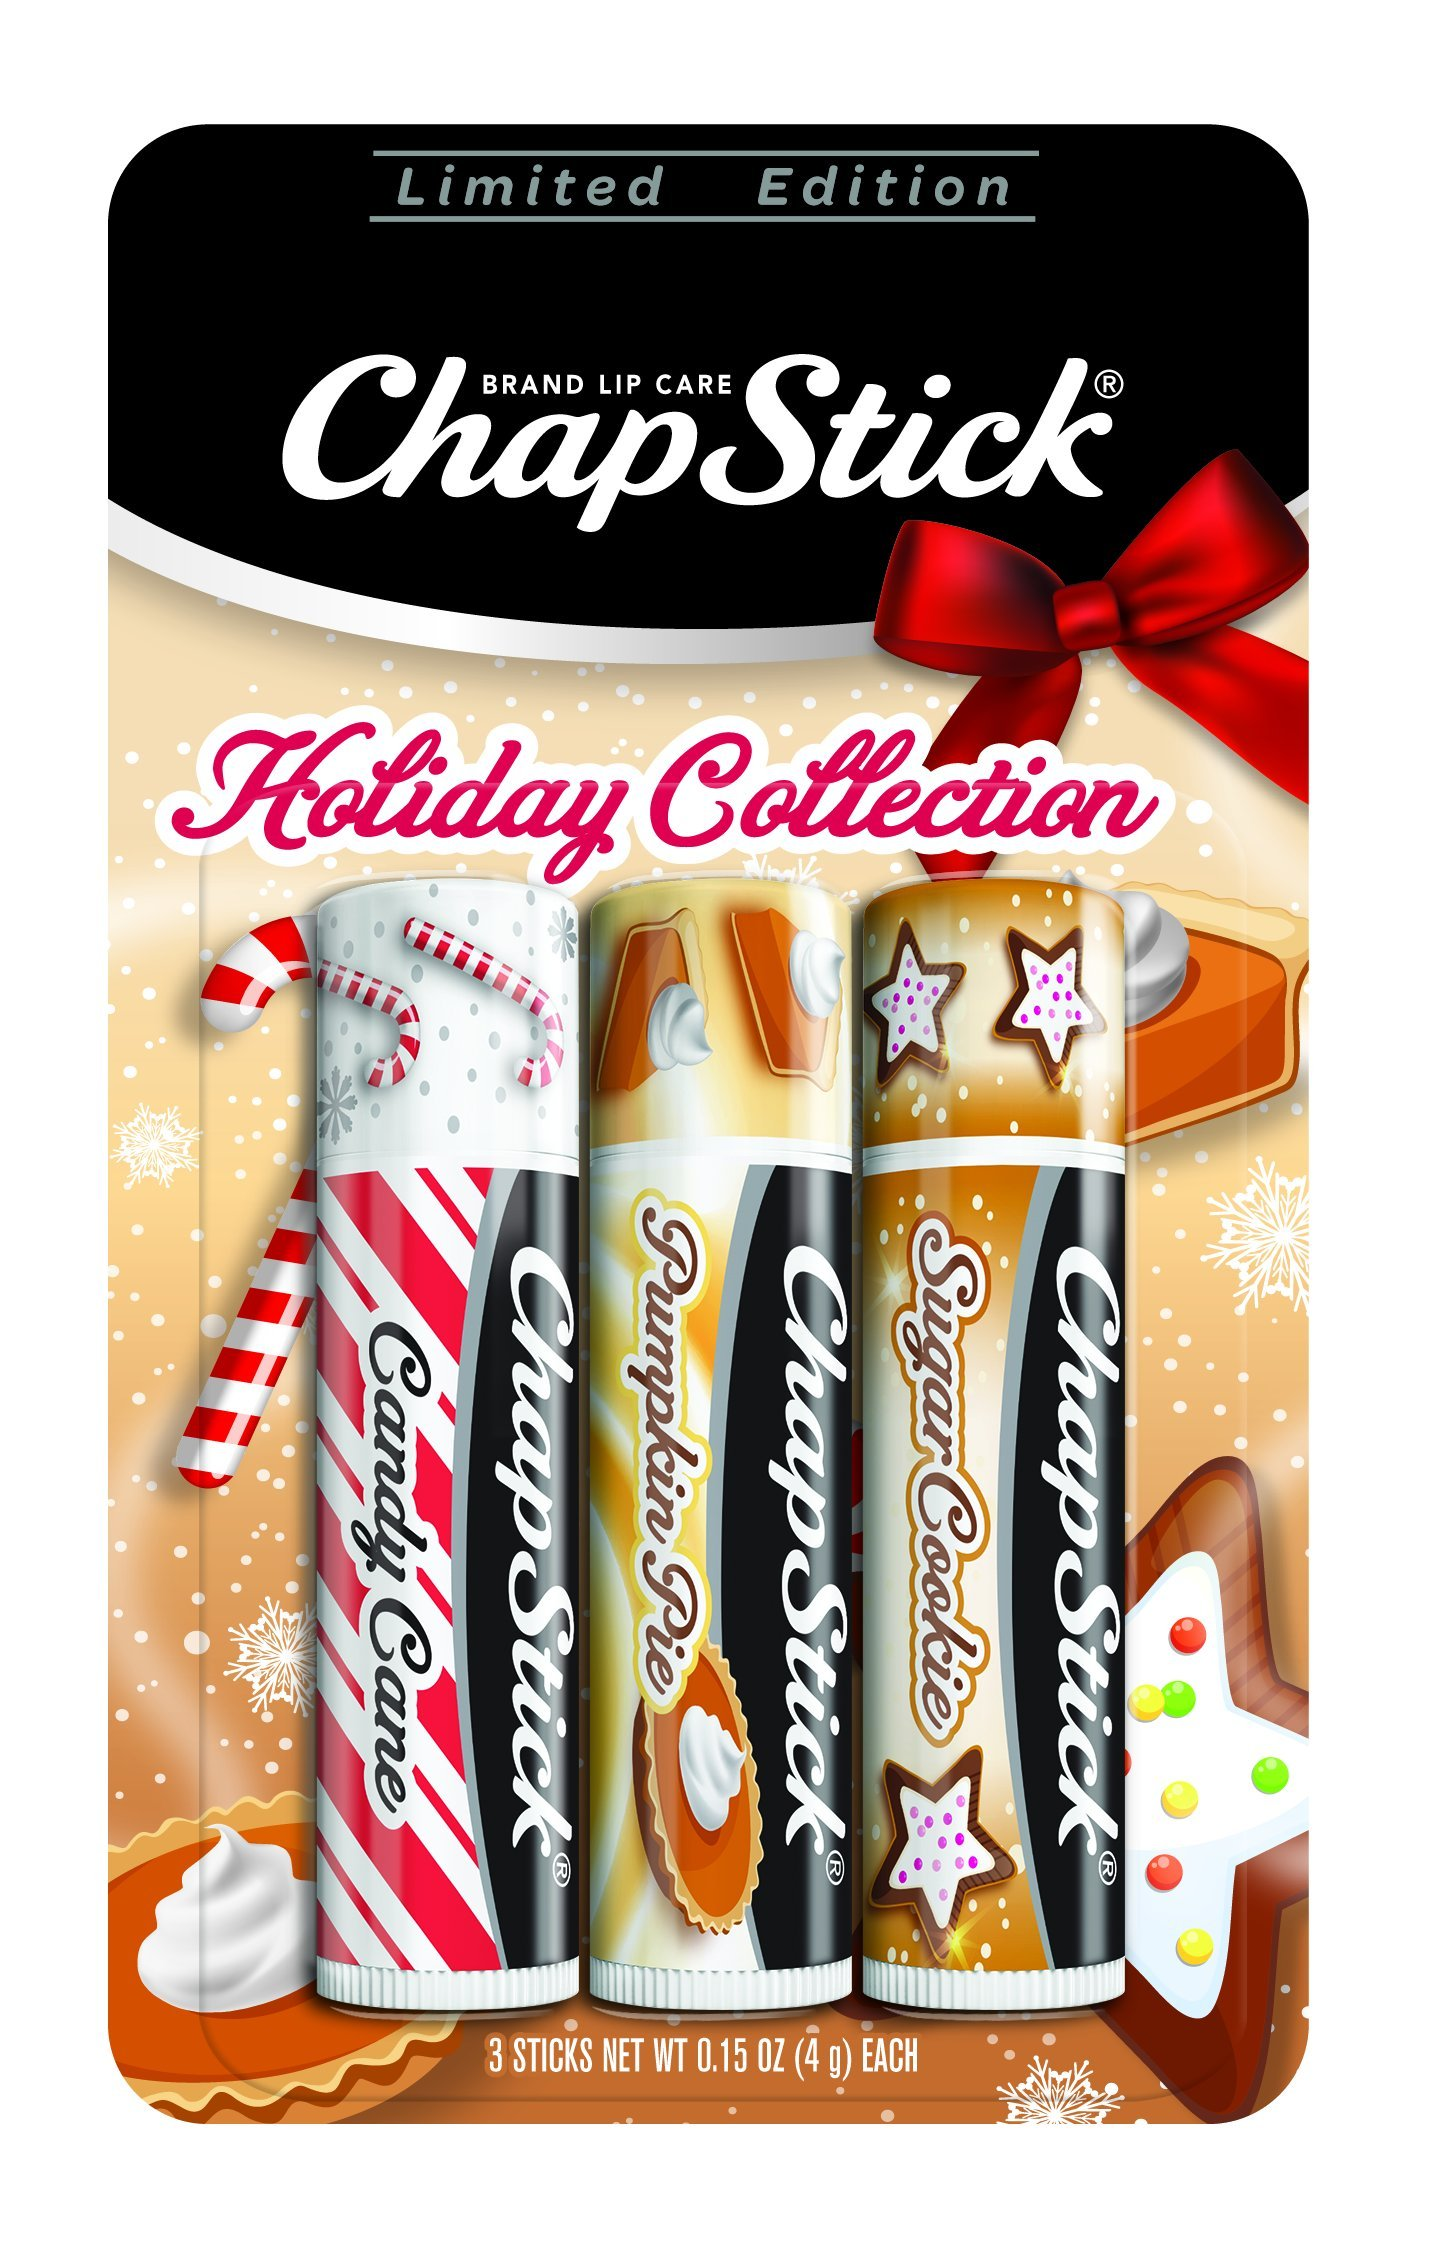 ChapStick Holiday Limited Edition Seasonal Flavored Lip Balm Tube, 0.15 Ounce Each (Candy Cane, Pumpkin Pie & Sugar Cookie Flavors, 1 Blister Pack of 3 Sticks)